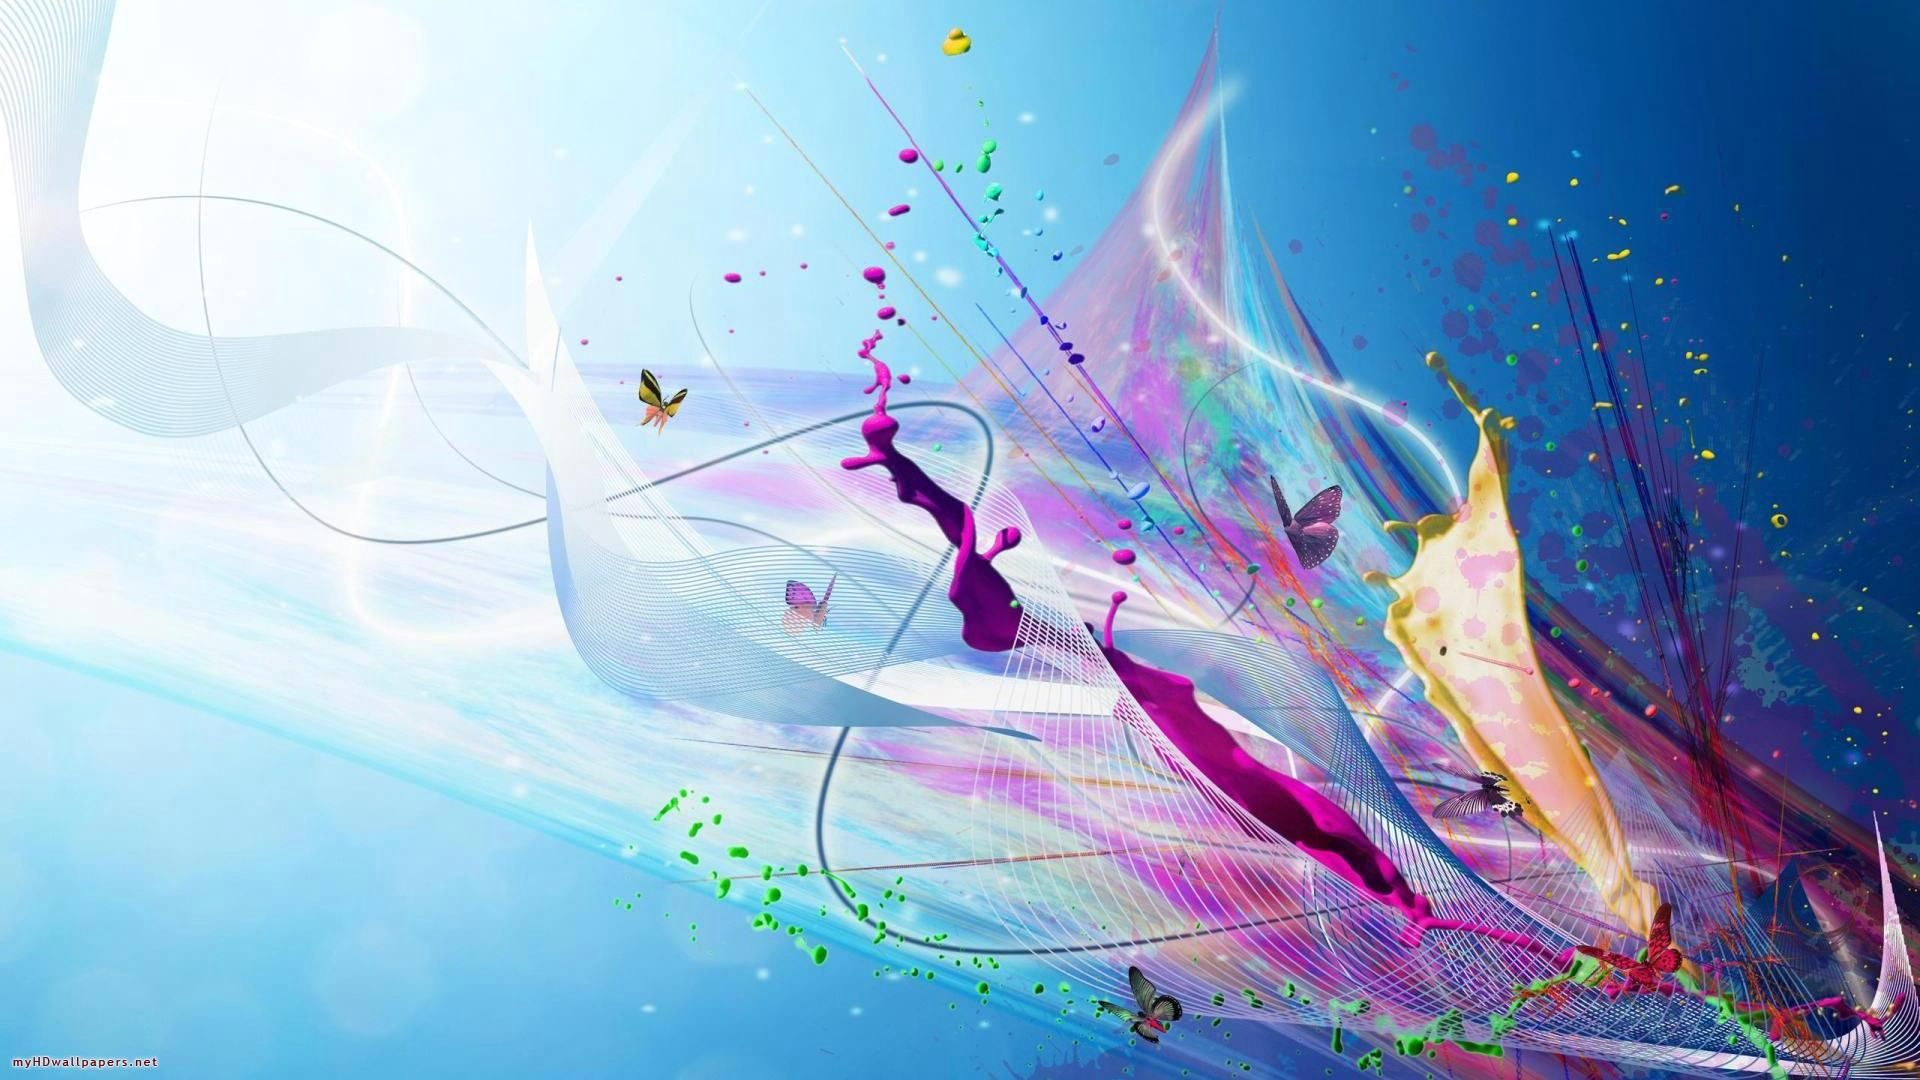 Download Free Wallpapers Backgrounds Colorful Abstract